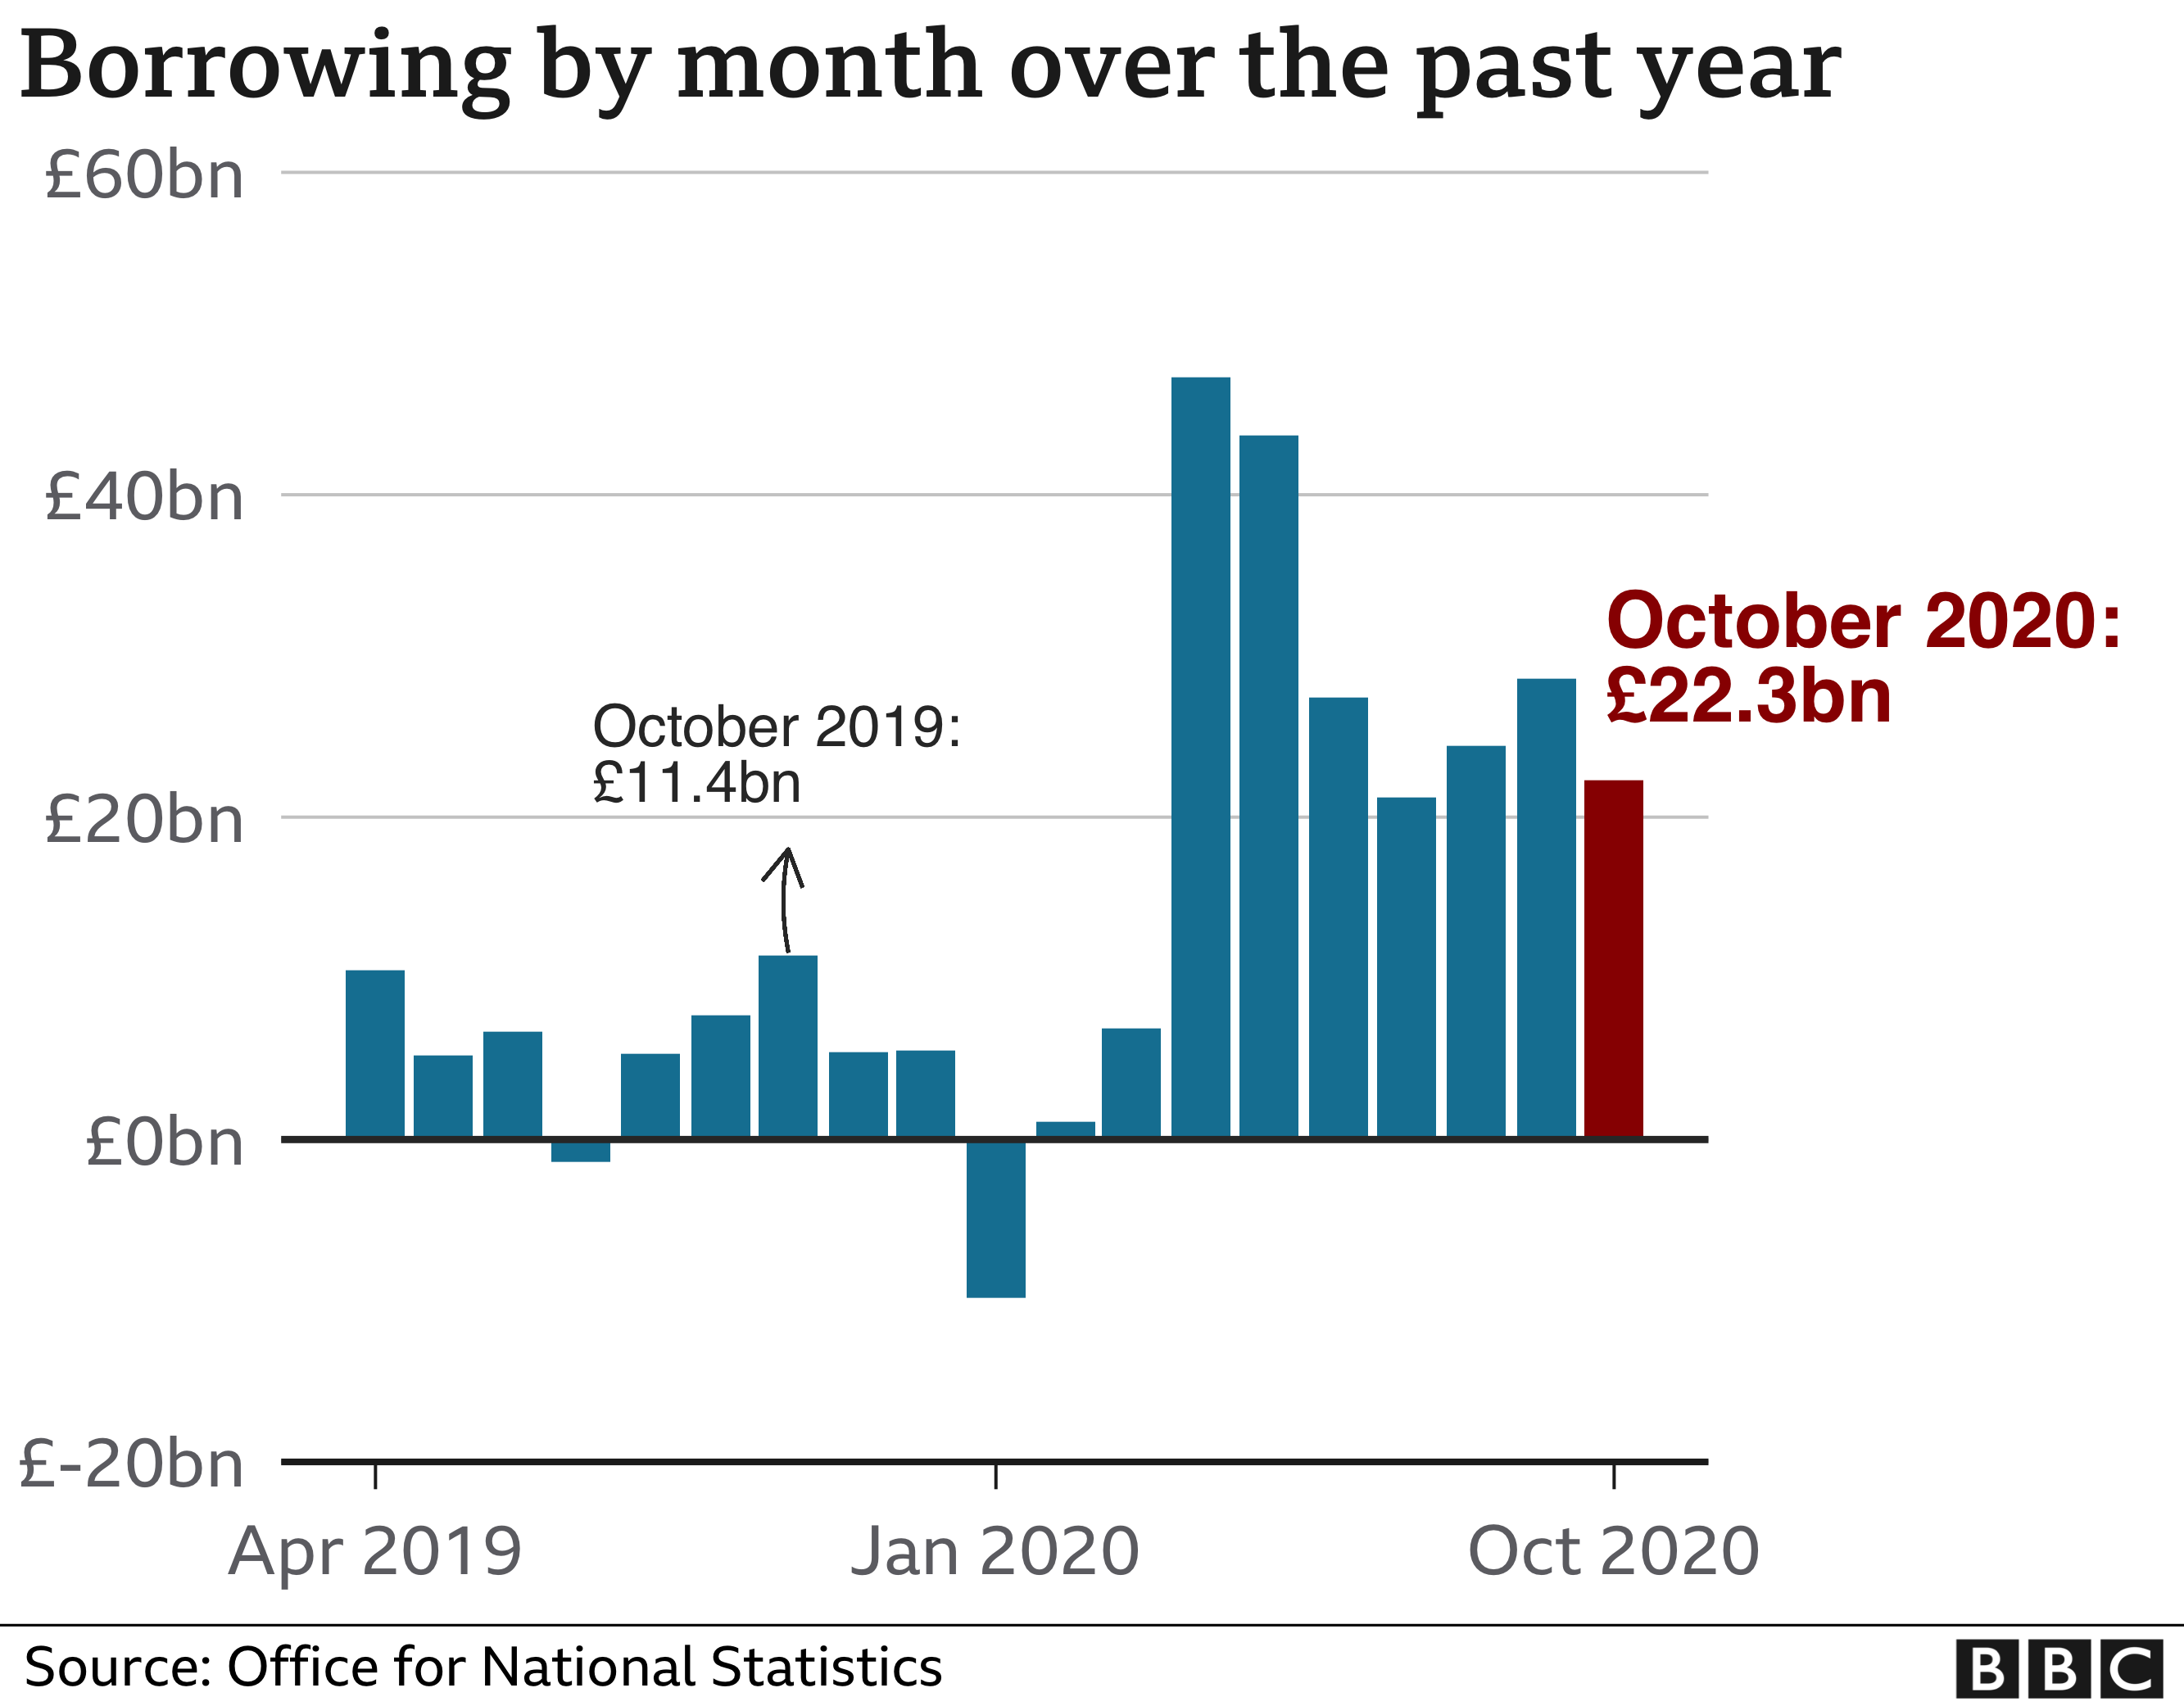 Public Borrowing by month